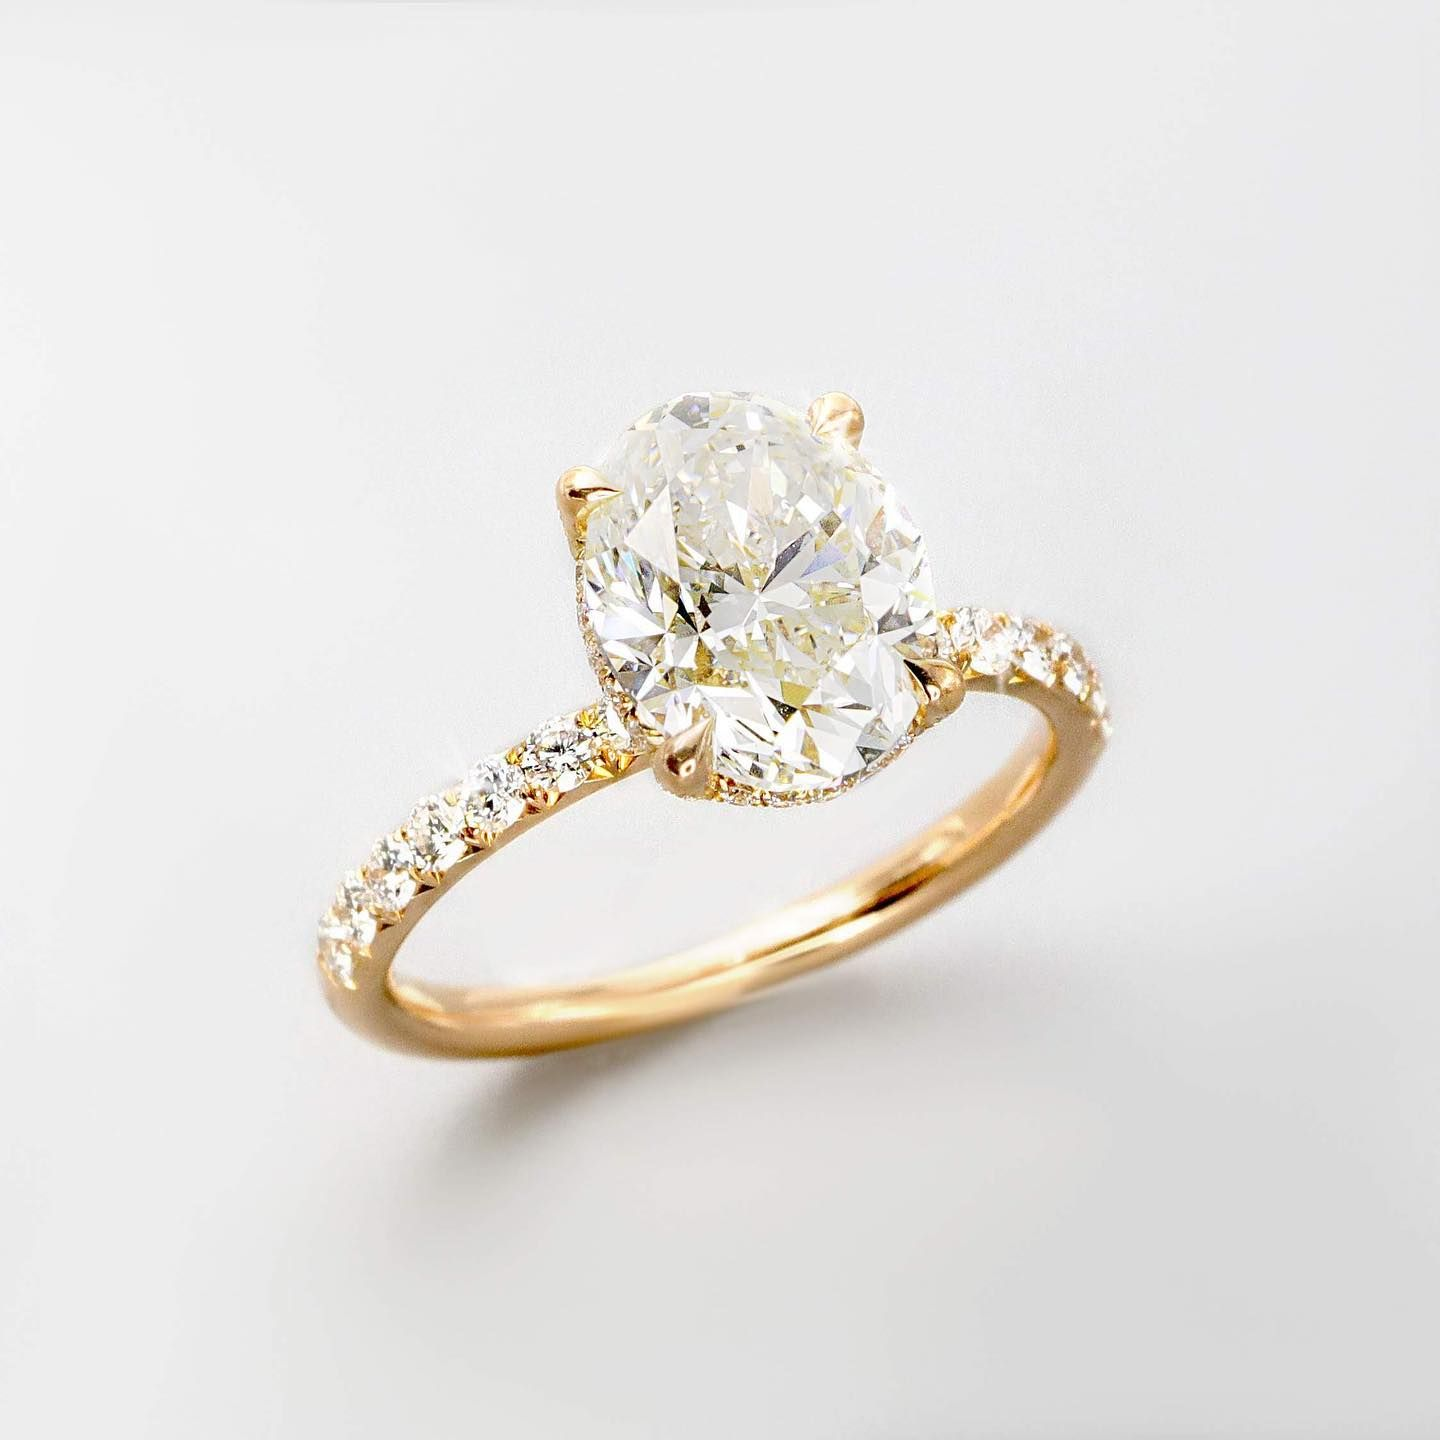 Ring Goals 3 Carat Gia Certified Oval Diamond Set In A 18k Yellow